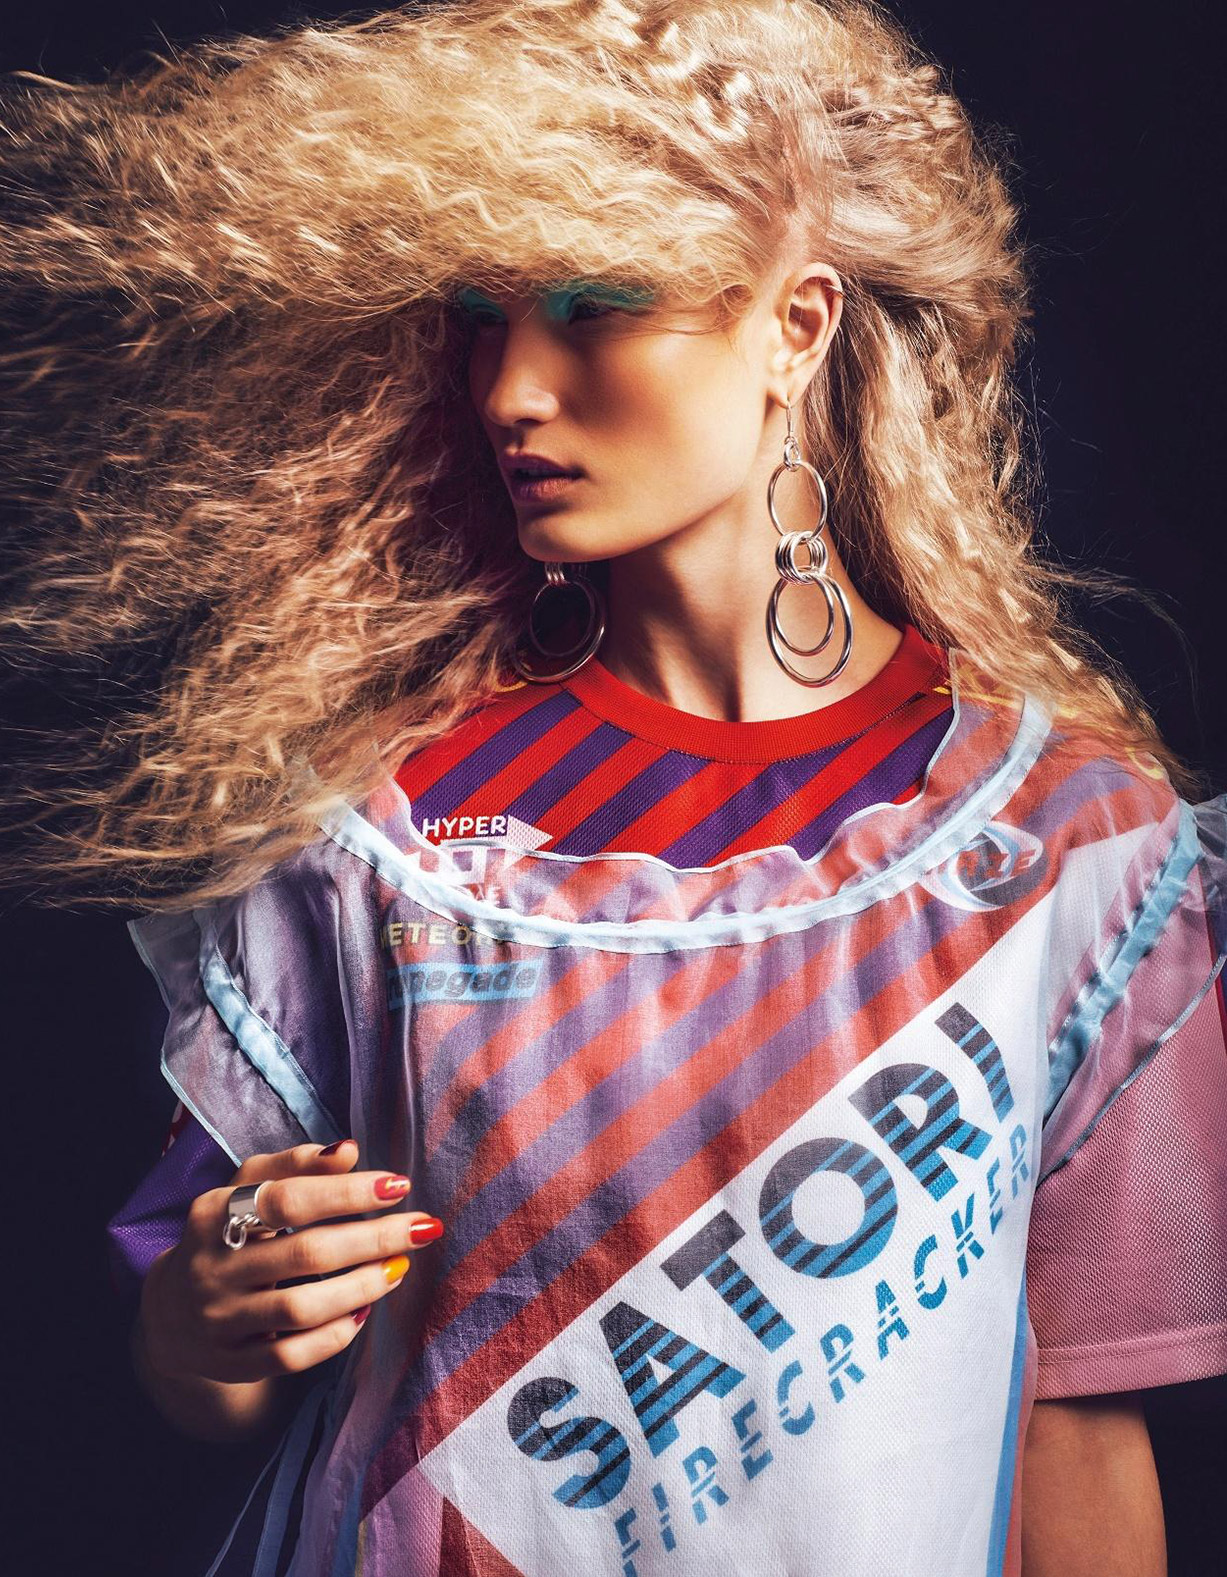 Stile da Campionessa / Ali Osk by Thiemo Sander / Grazia Italia march 2018